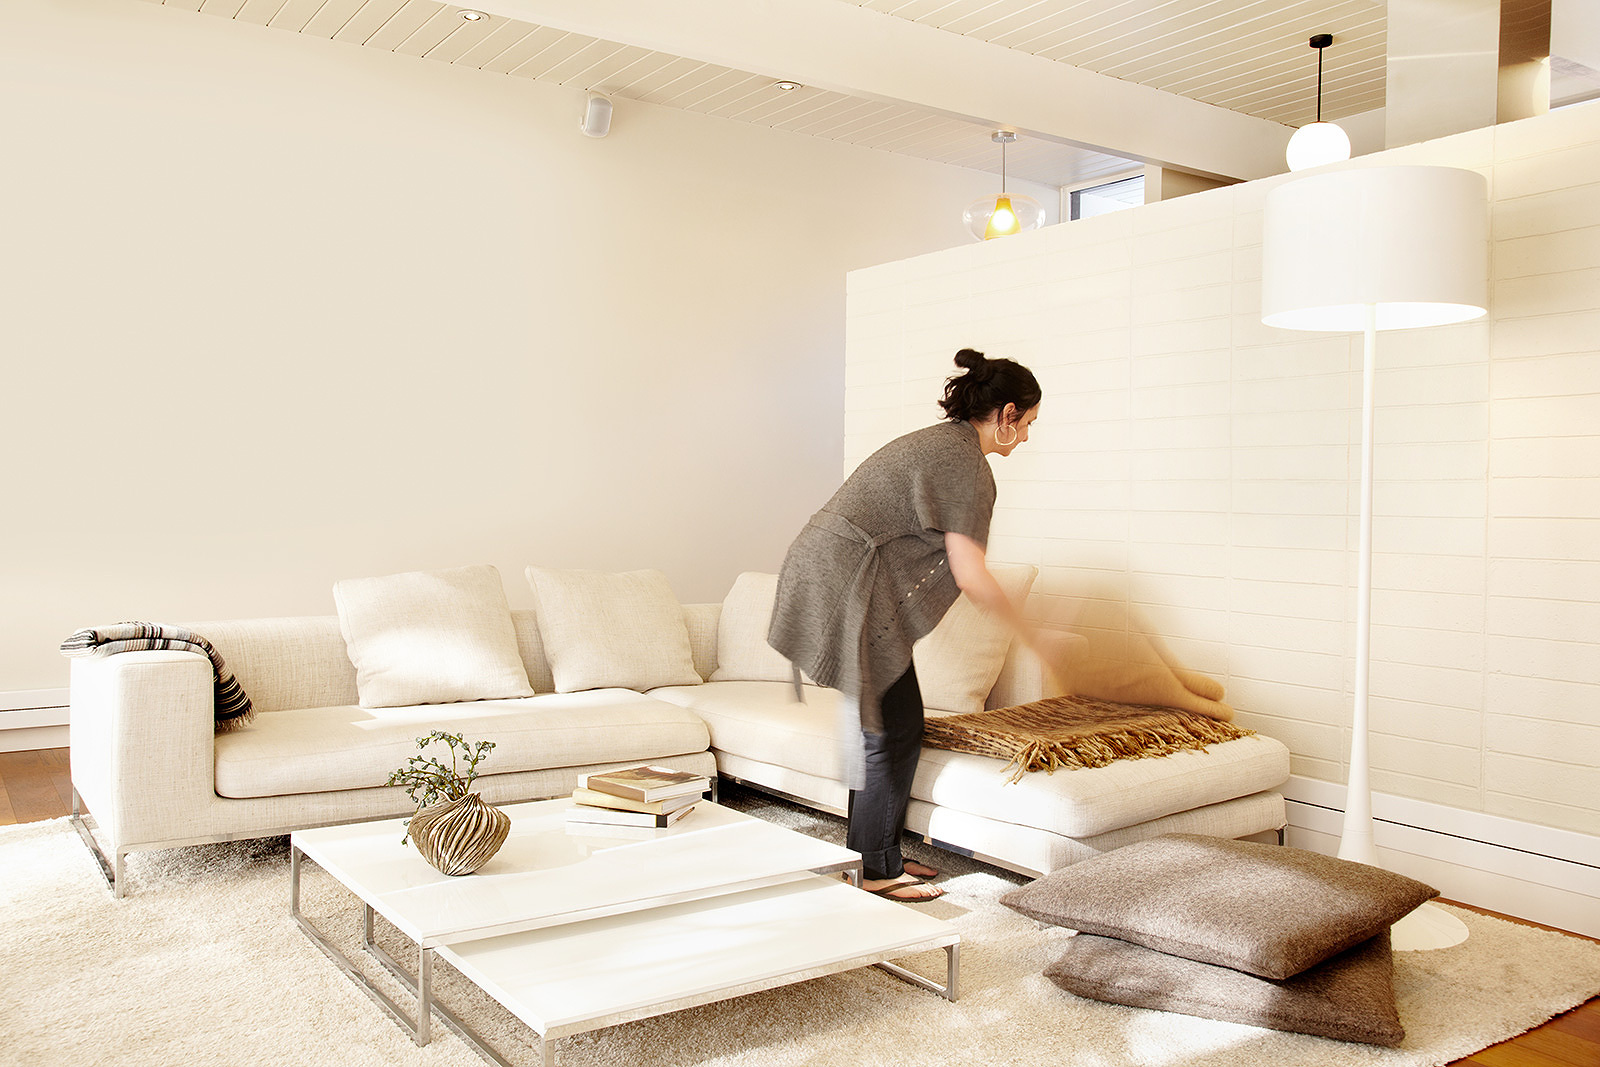 Woman fluffing pillows in living room  | Dovis Bird Agency Photography